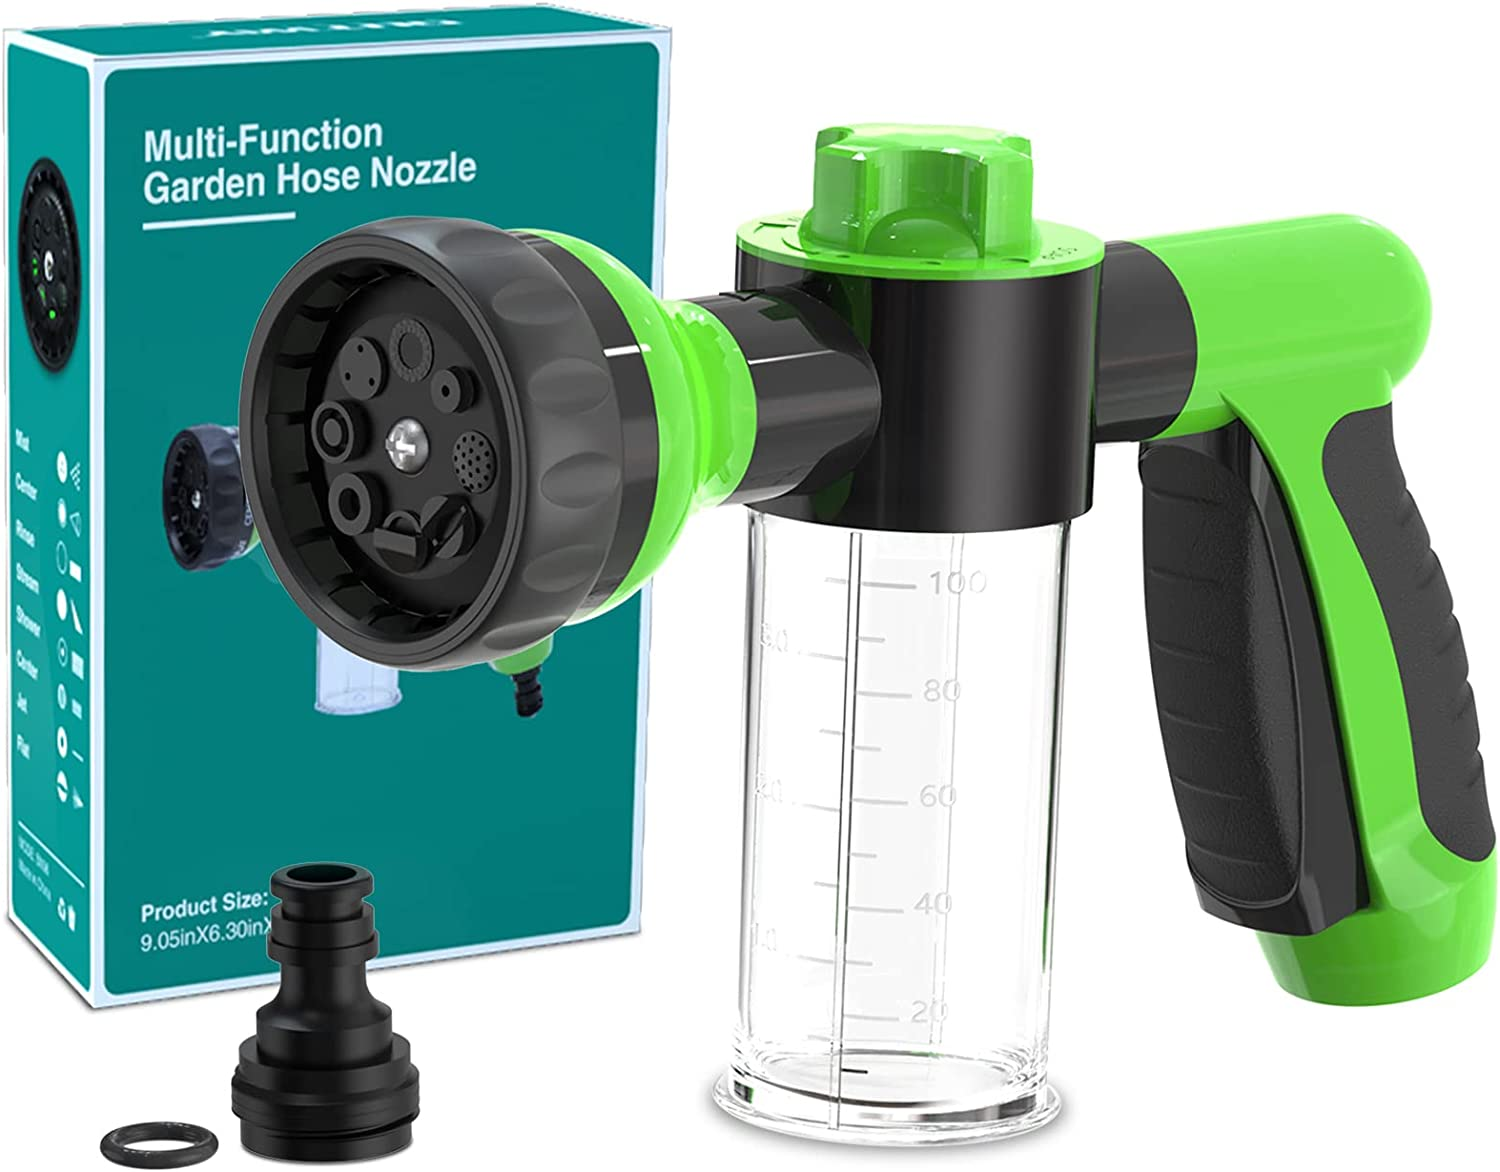 Garden Hose Nozzle, High Pressure Spray Gun Nozzle, 8 Spray Patterns for Watering Plants, Lawn, Patio, Cleaning, Showering Pet with 3.5oz/100cc Soap Dispenser Bottle